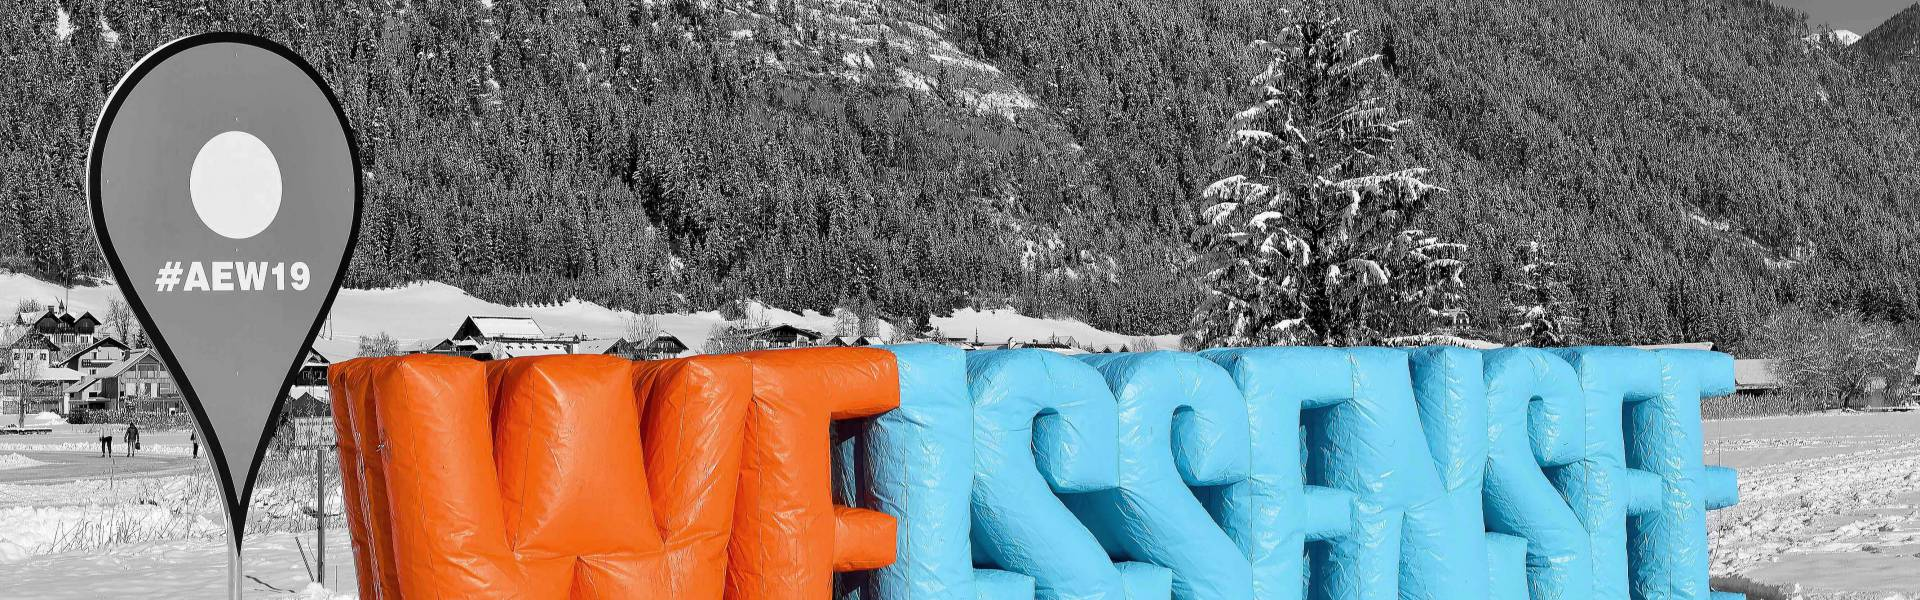 Large inflatable promotional material | X-Treme Creations Giant inflatable letters of 3 meters high of the word Weissensee X-Treme Creations